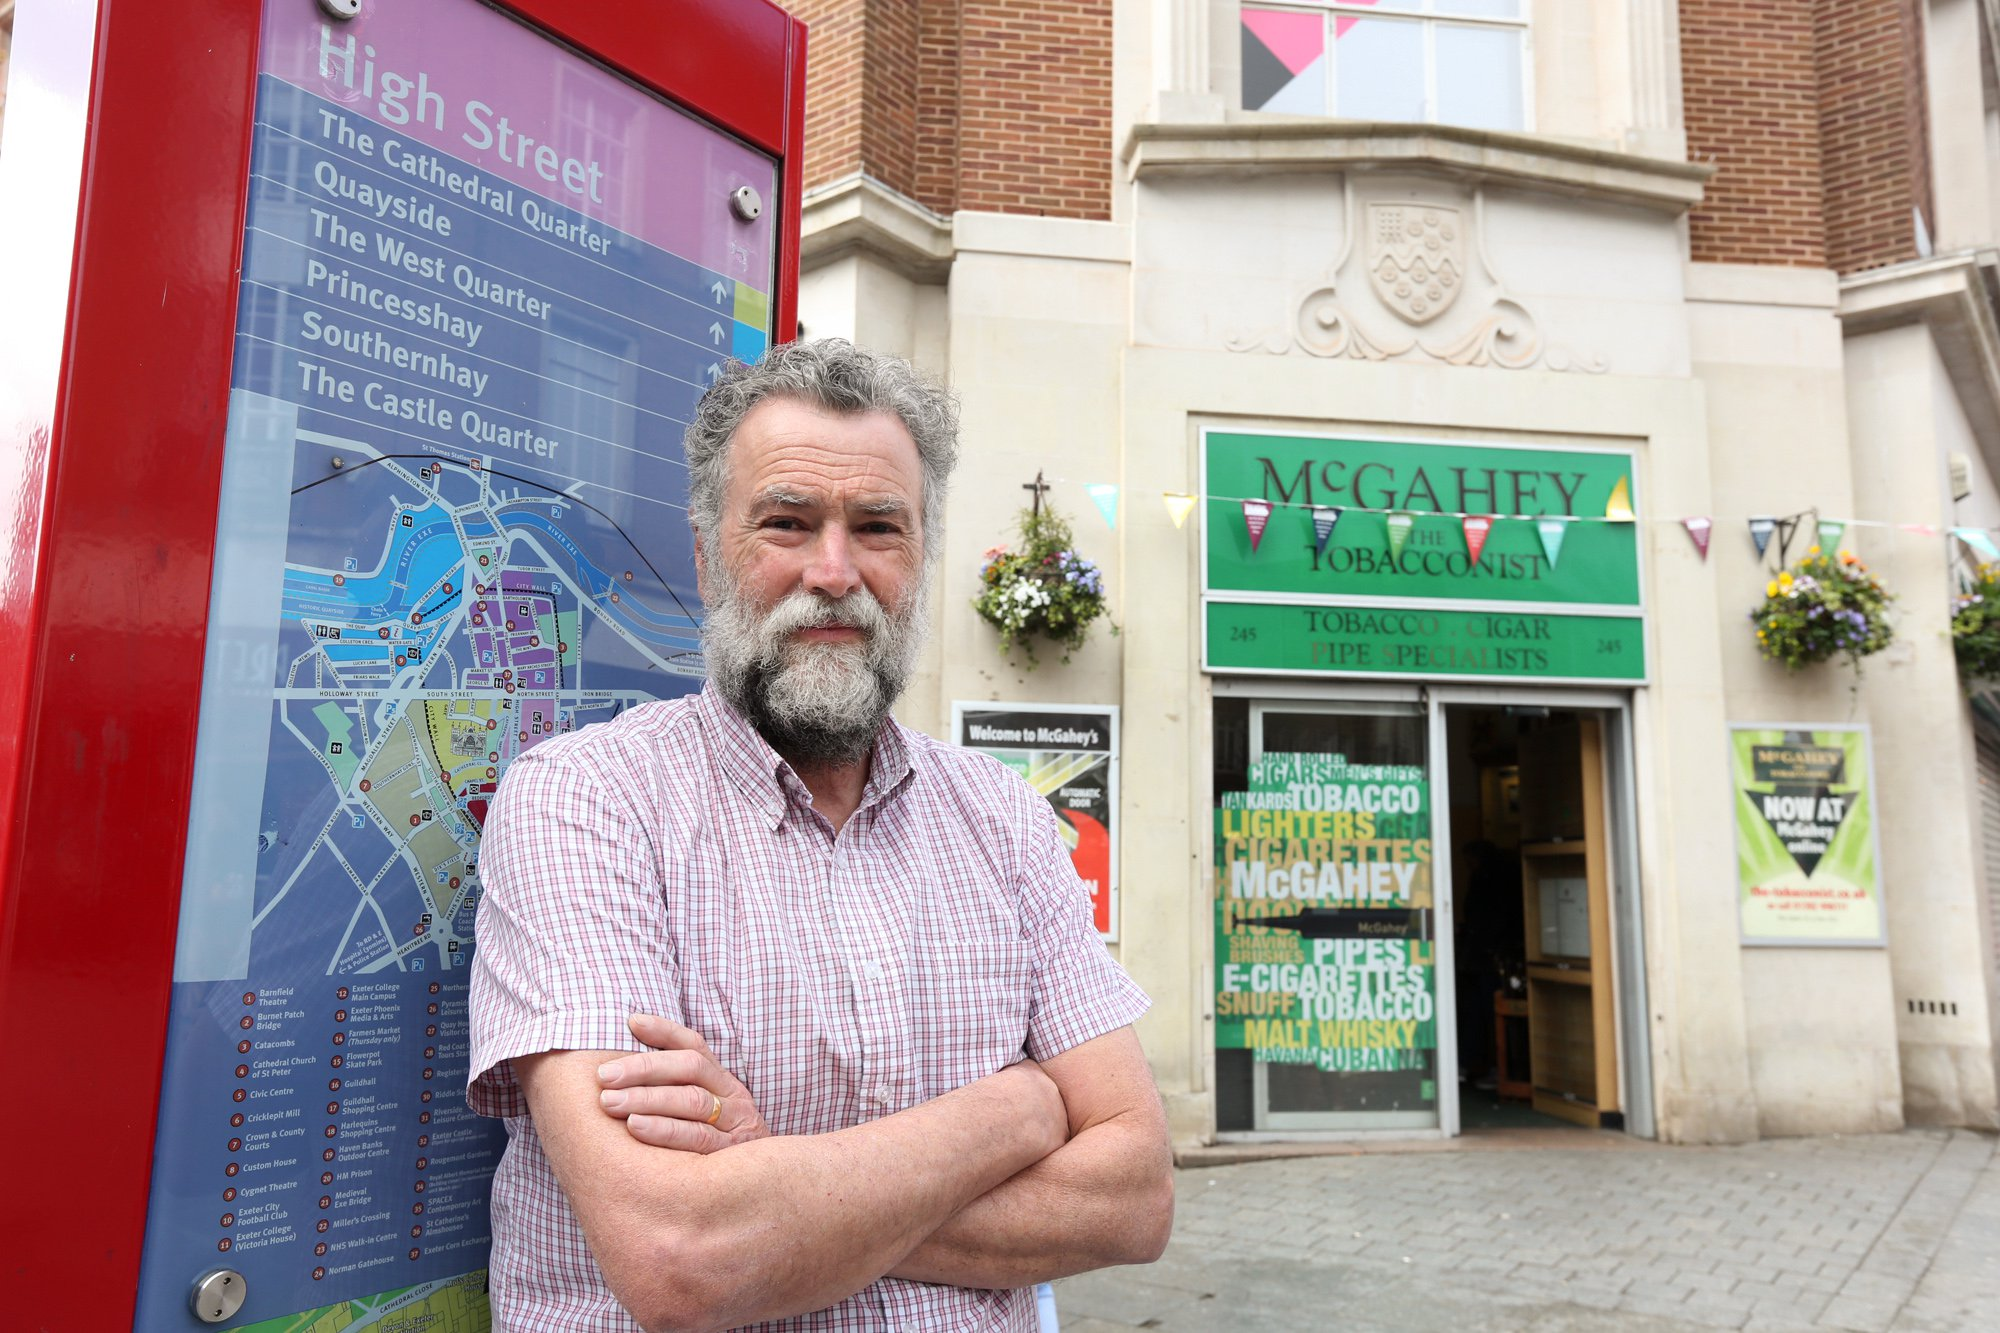 """PIC: APEX 06/03/2019 Over a century of high street history ended on Wednesday when a city's last independent shop closed for good. Tobacconist McGahey???s shut its doors for the final time in Exeter, Devon after 140 years in business. Martin McGahey, 63 said he had been involved with the business which will continue to run online since childhood. McGahey's The Tobacconist is Exeter High Street's only independent retailer and has sold tobacco for 140 years. Martin said it is the end of a family relationship with Exeter. ???It???s a very sad day. I felt the weight of four generations today."""" This picture shows Martin McGahey outside the store in Exeter. SEE STORY BY APEX NEWS - 01392 823144 ---------------------------------------------------- APEX NEWS AND PICTURES NEWS DESK: 01392 823144 PICTURE DESK: 01392 823145"""